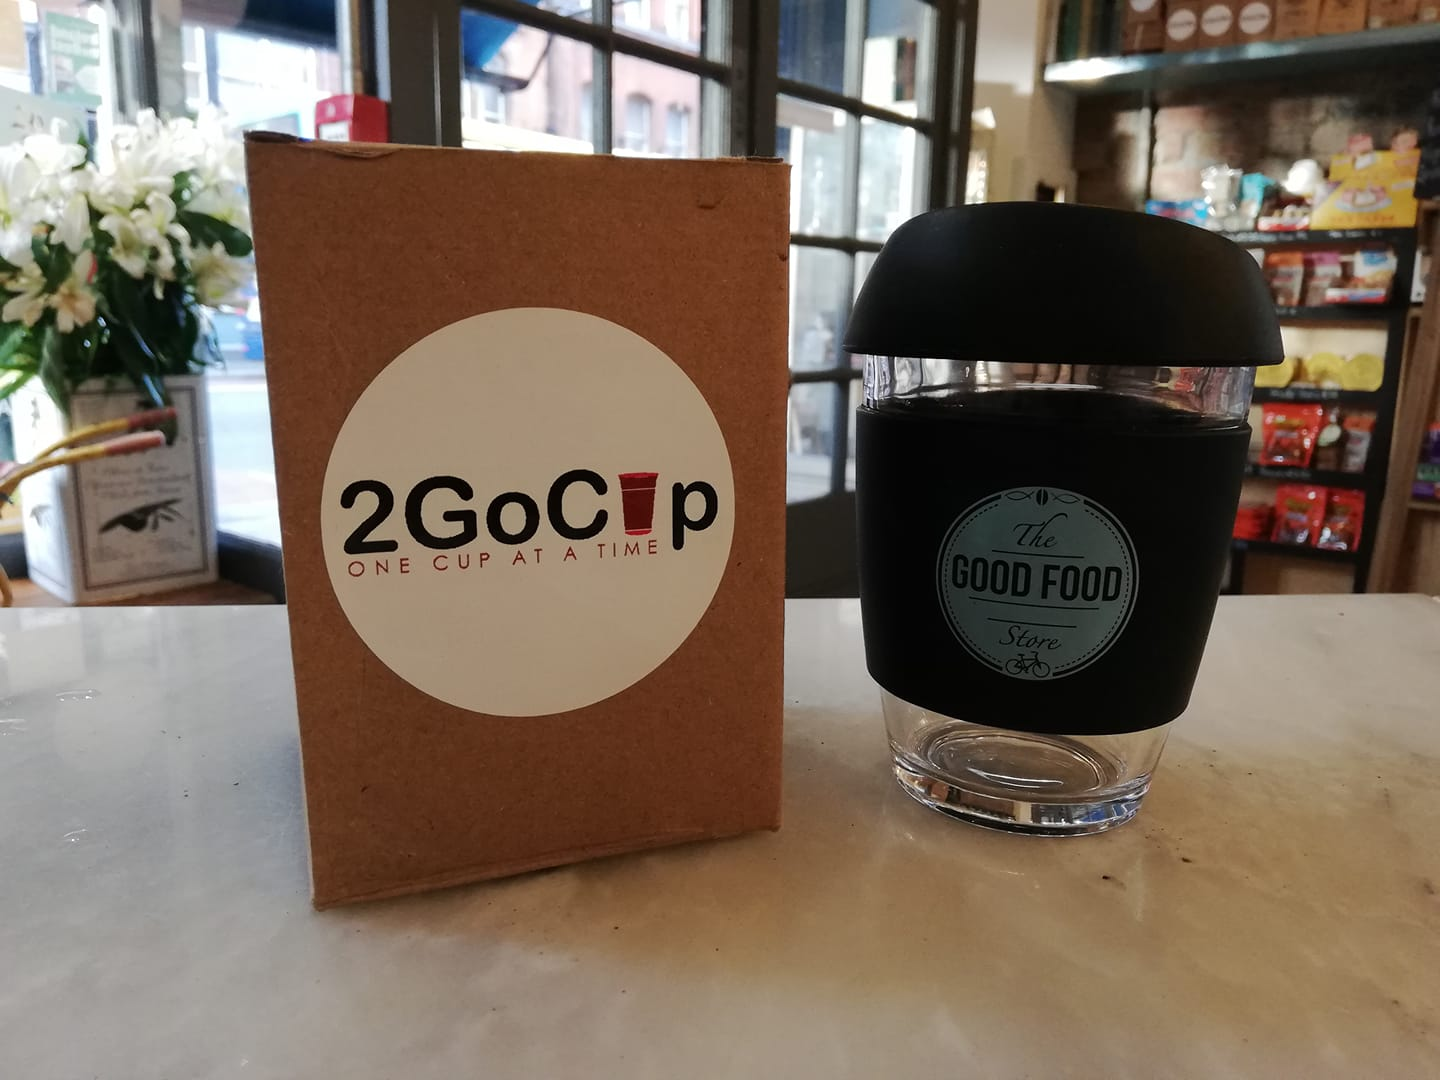 The Good Food Store Coffee Keep Cup  - Around 22,000 coffee cups are disposed of every HOUR in Ireland and with this in mind, we decided to get our own reusable 2 Go cups, available in both of our stores now. Anyone using a reusable cup when getting coffee will get 15c off - we're hoping that steps like these will reduce our environmental footprint, and yours too!